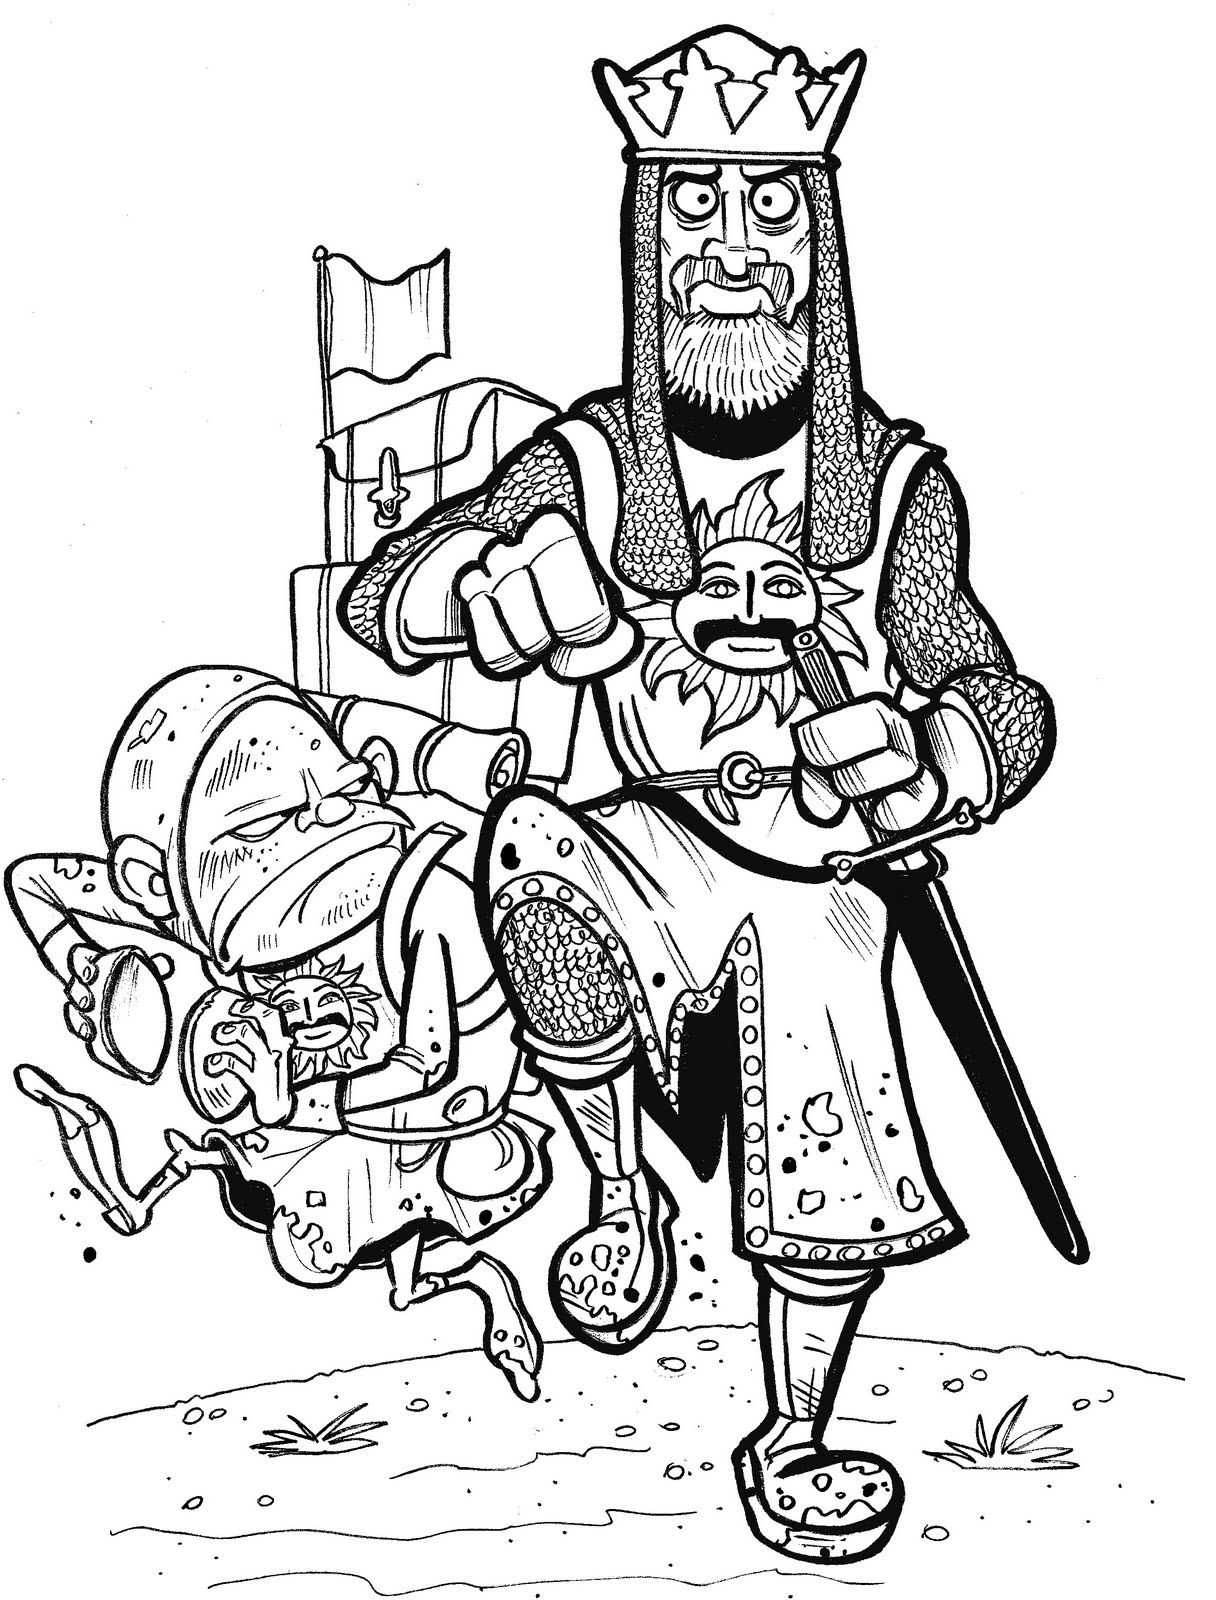 King Arthur Monty Python And The Holy Grail Monty Python T Shirt Diy Coloring Pages